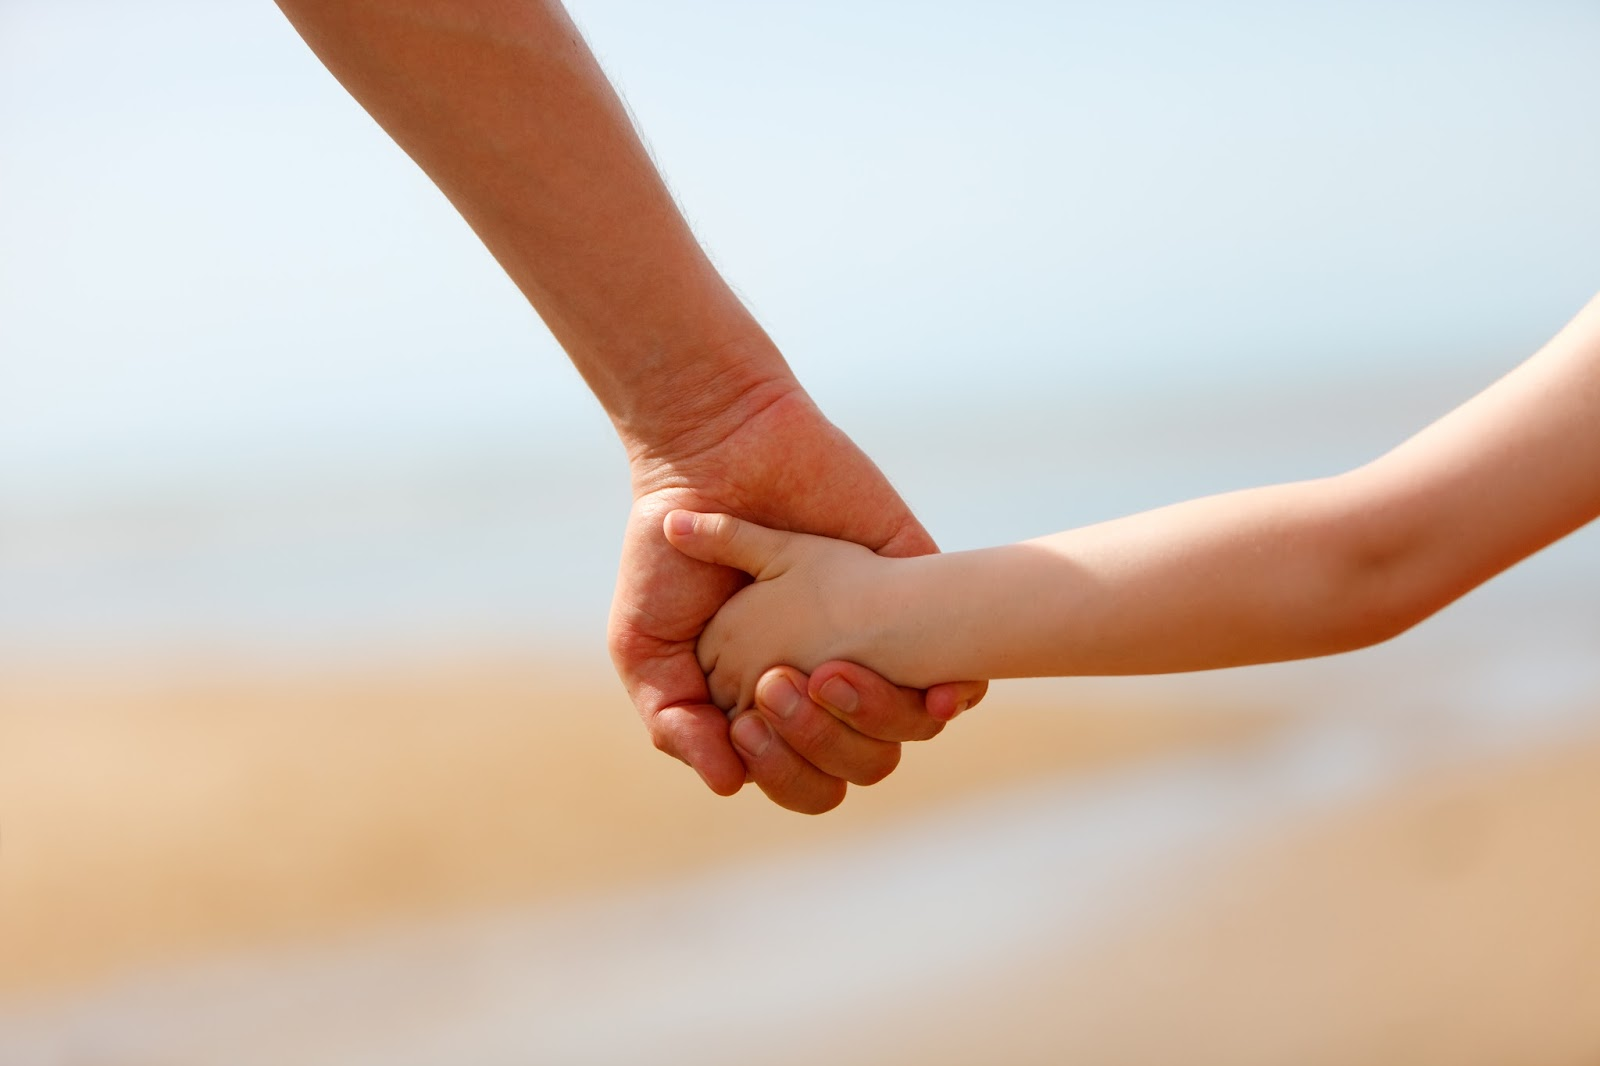 Purposeful Parenting - Parent and Child Holding Hands - Cause and Effect